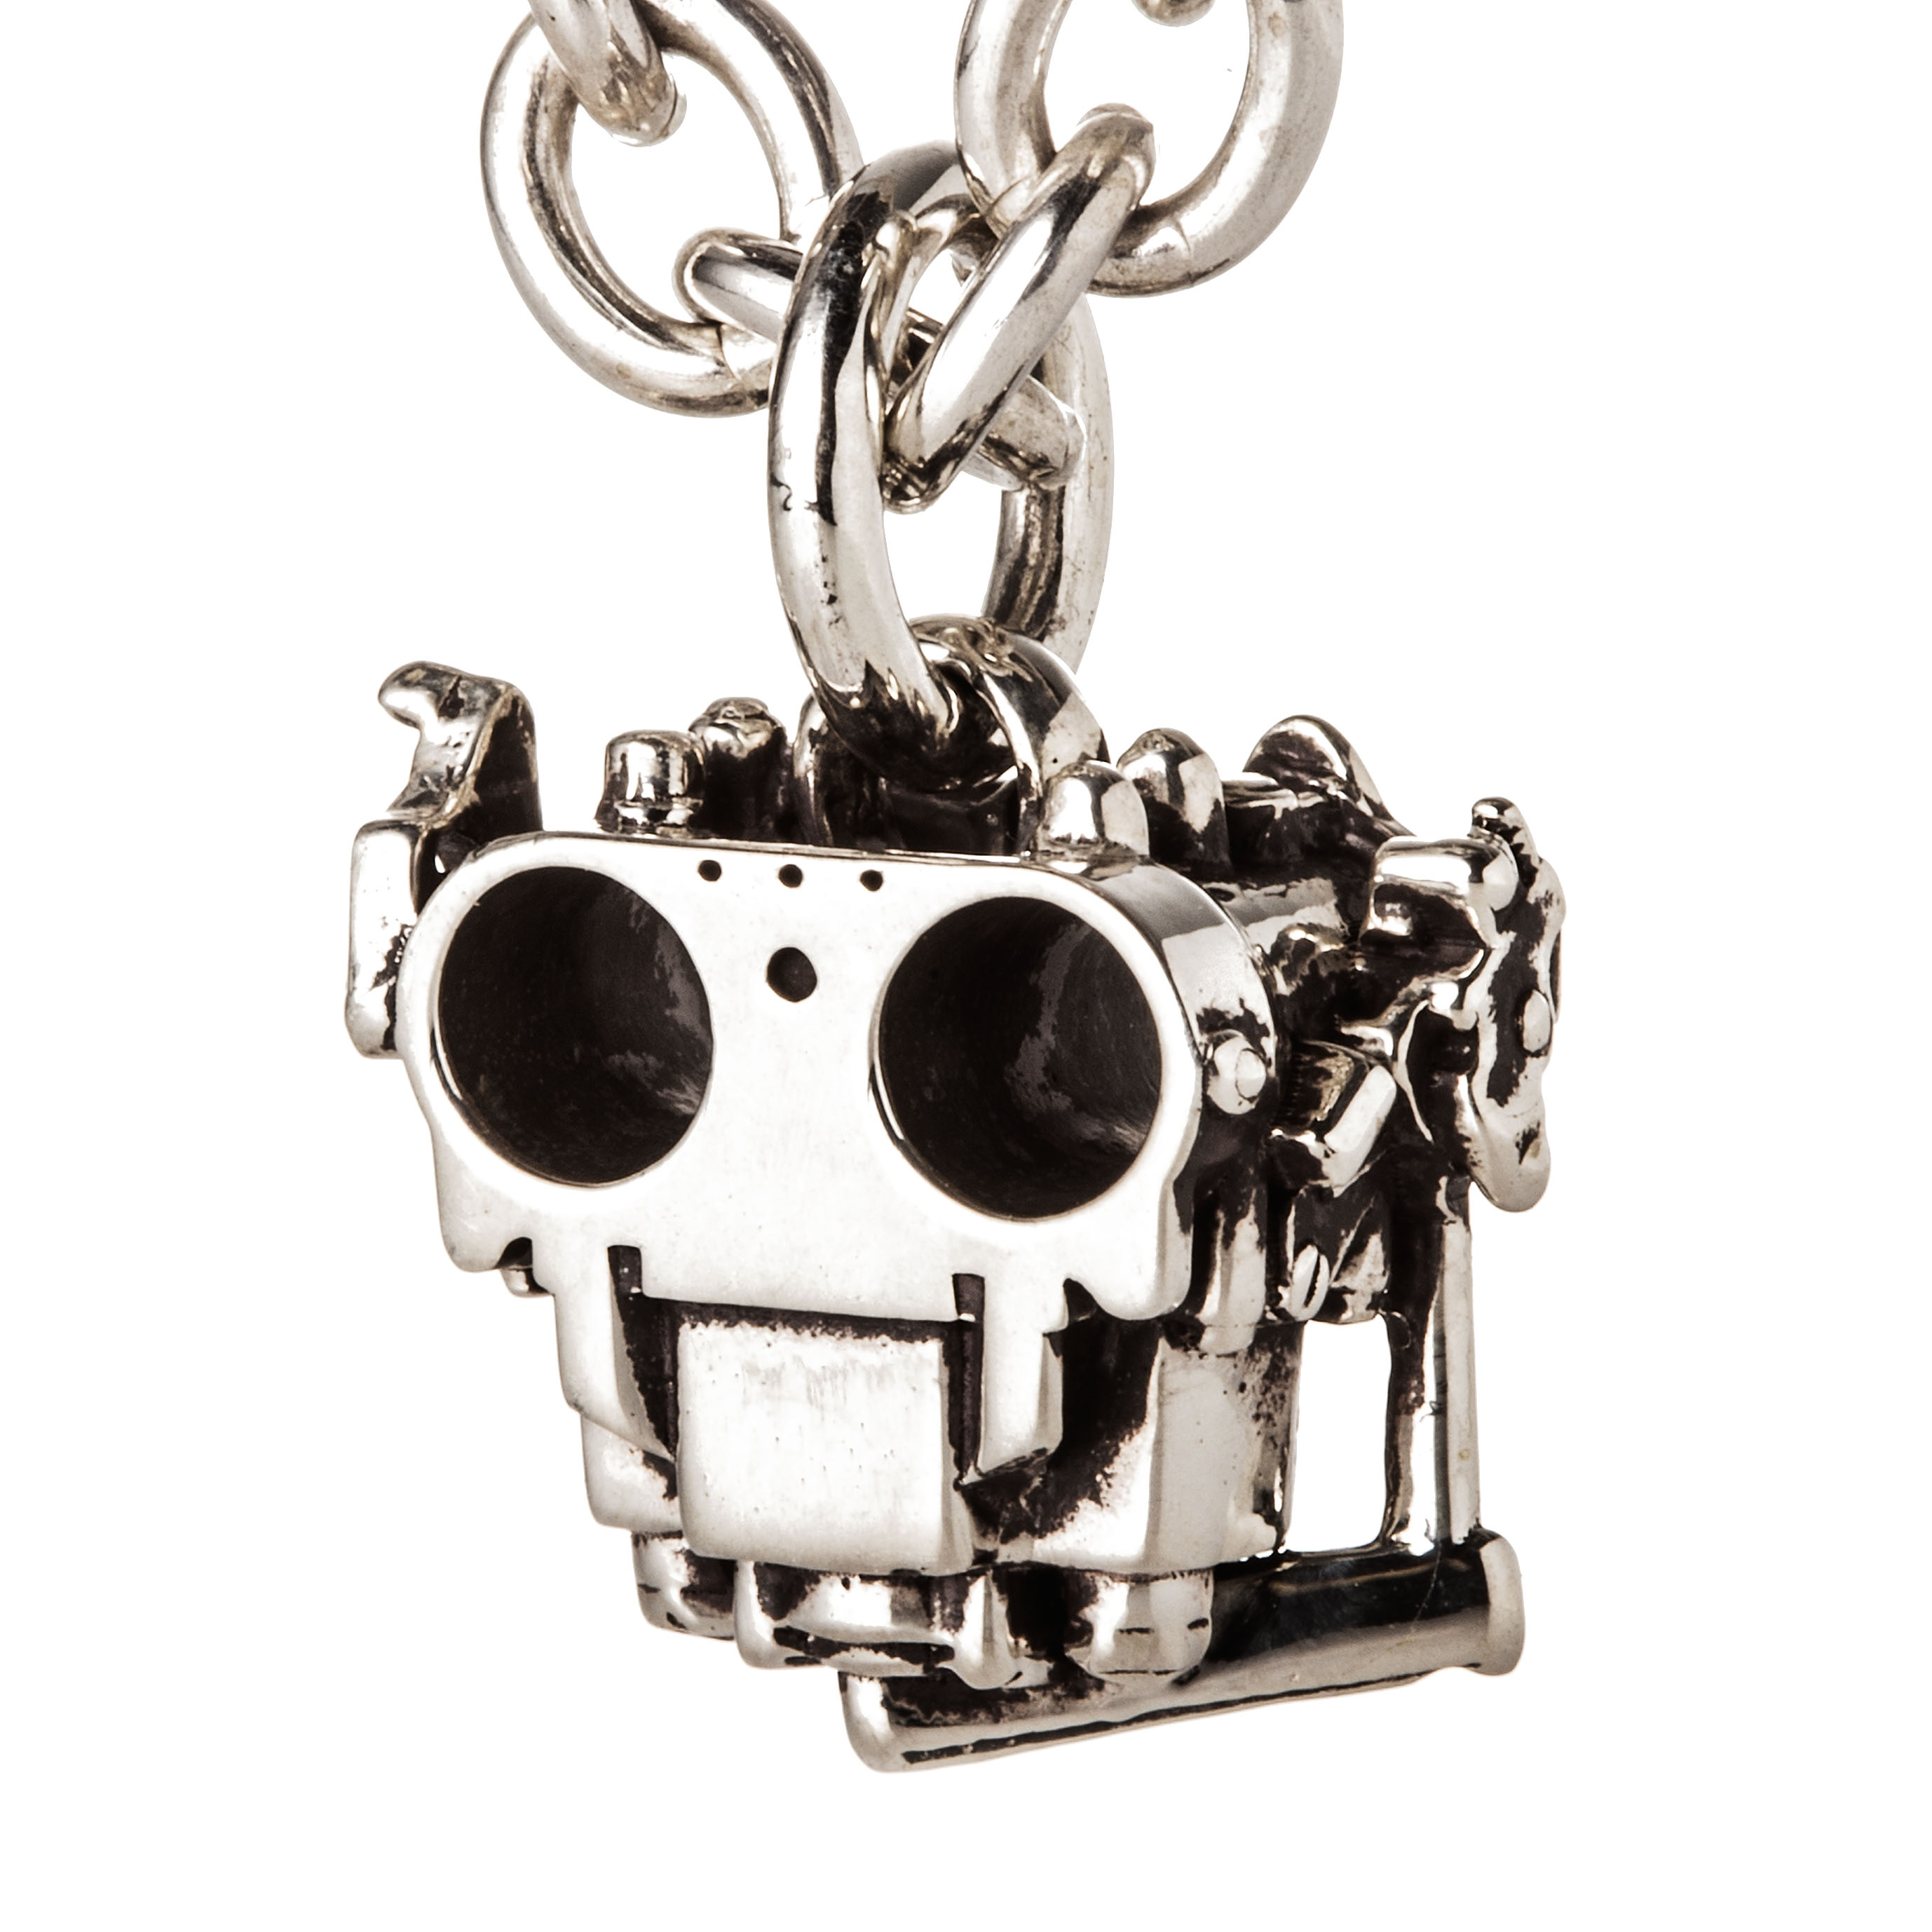 TWOTHROAT CARBURETOR PENDANT